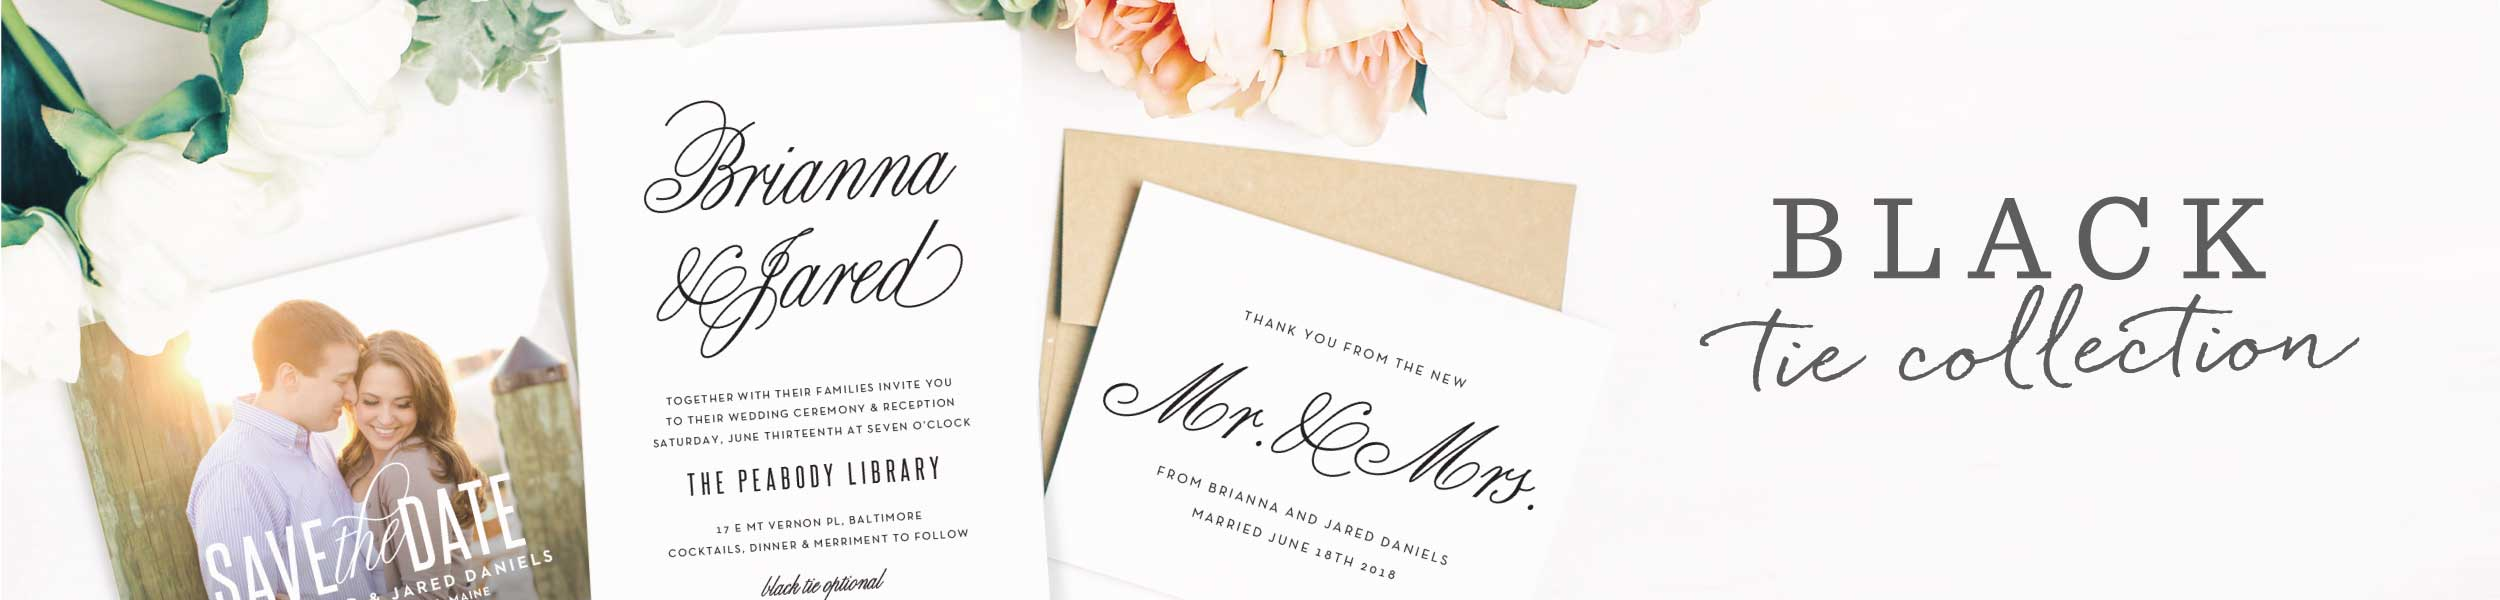 Typography Wedding Invitations | Basic Invite Black Tie Collection